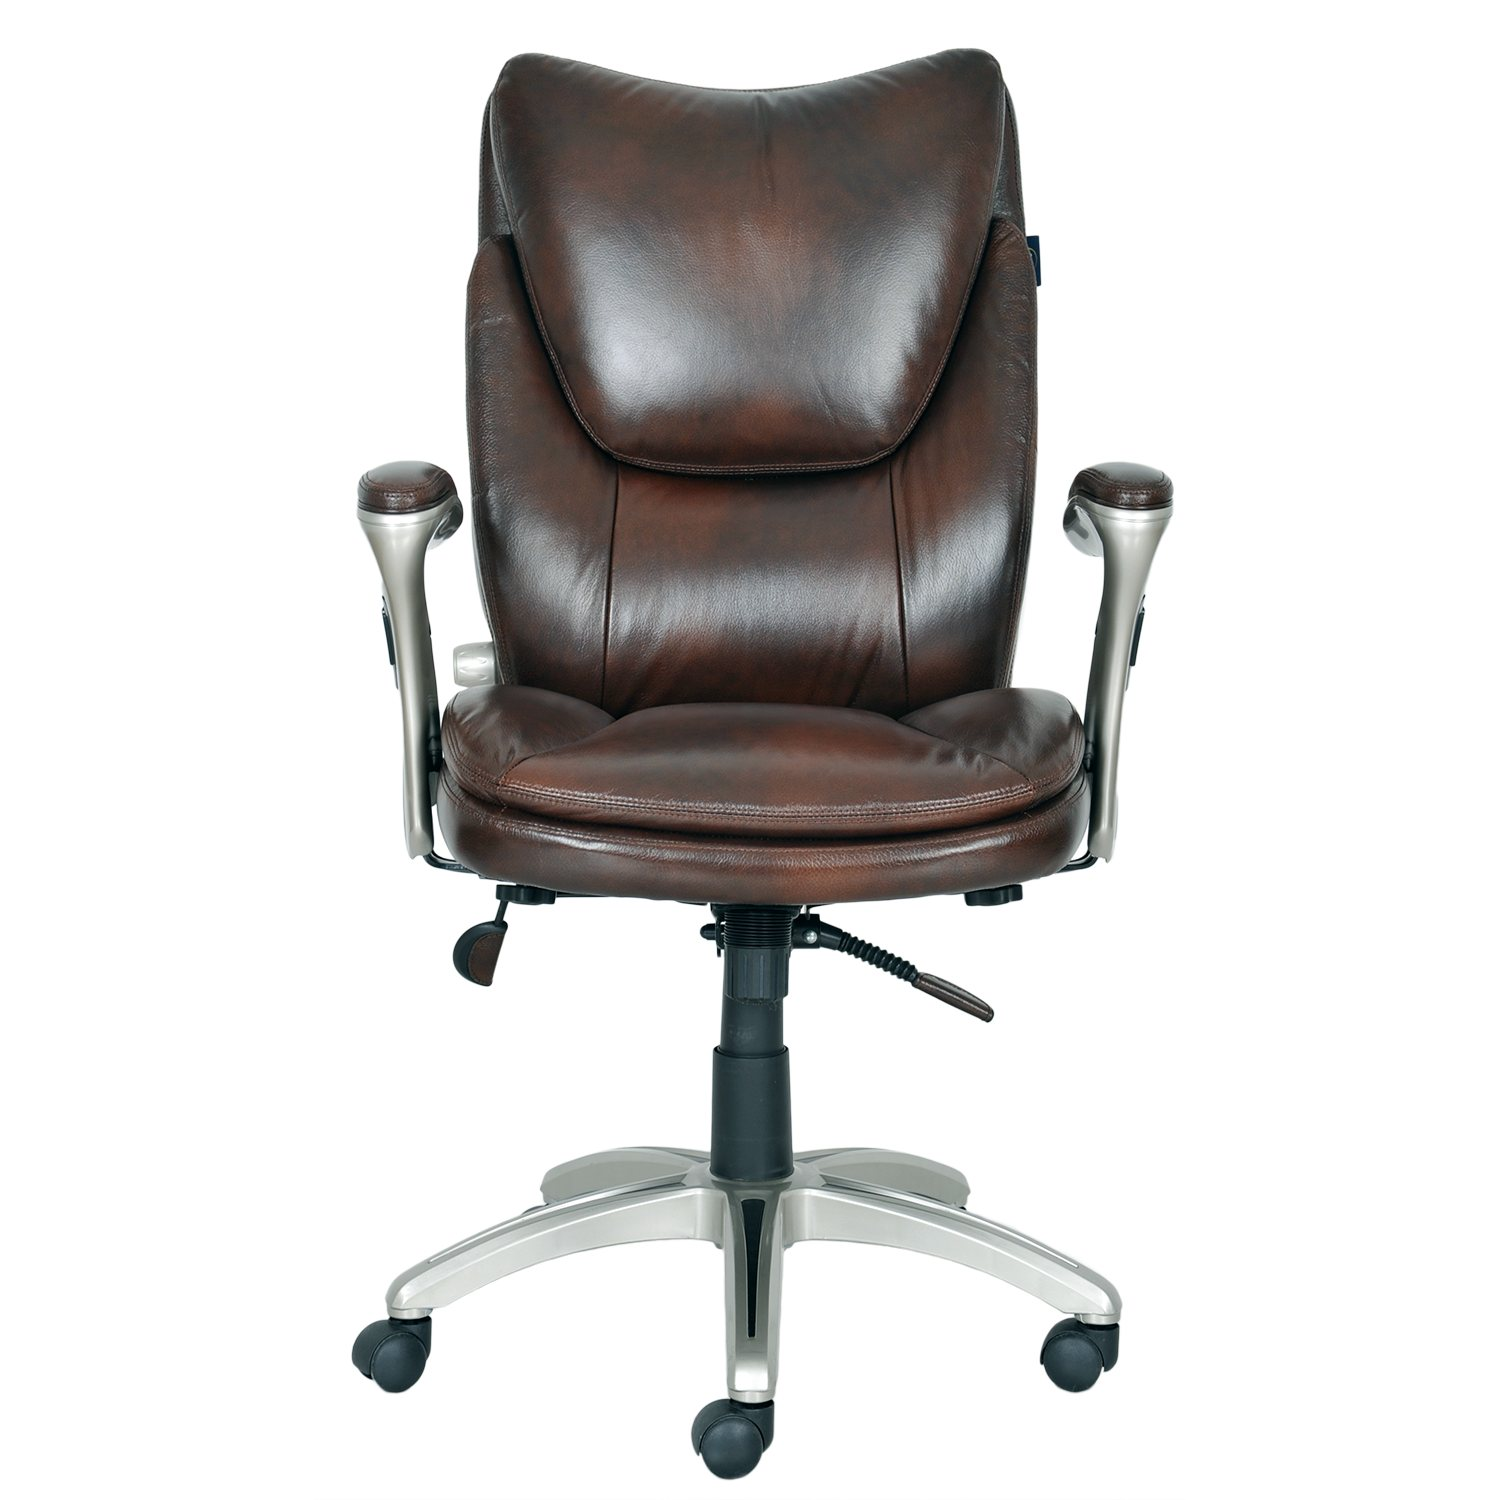 Serta Bonded Leather Executive Chair Augusta Brown Sam s Club